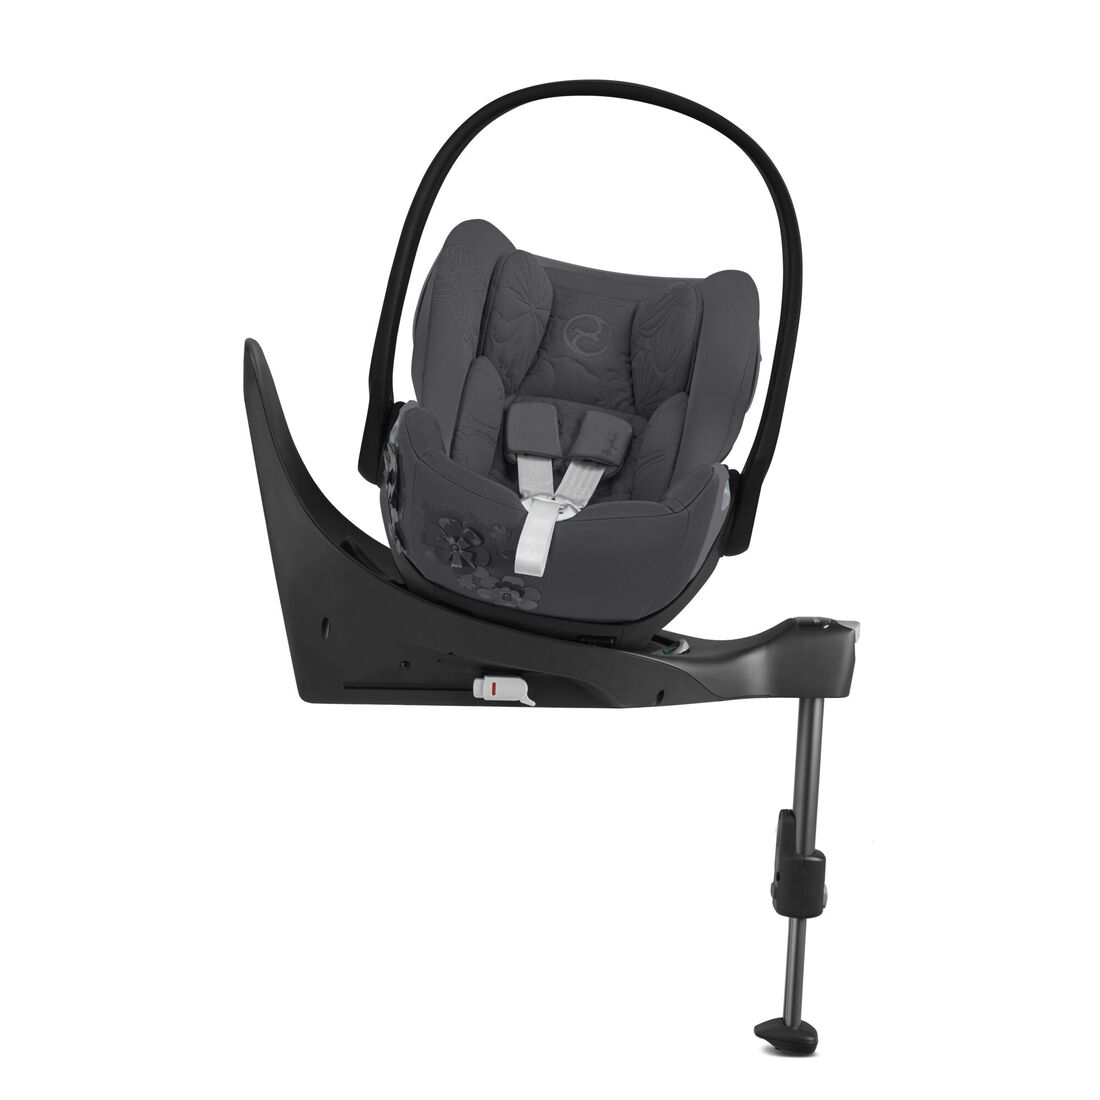 CYBEX Cloud Z i-Size - Dream Grey in Dream Grey large image number 4